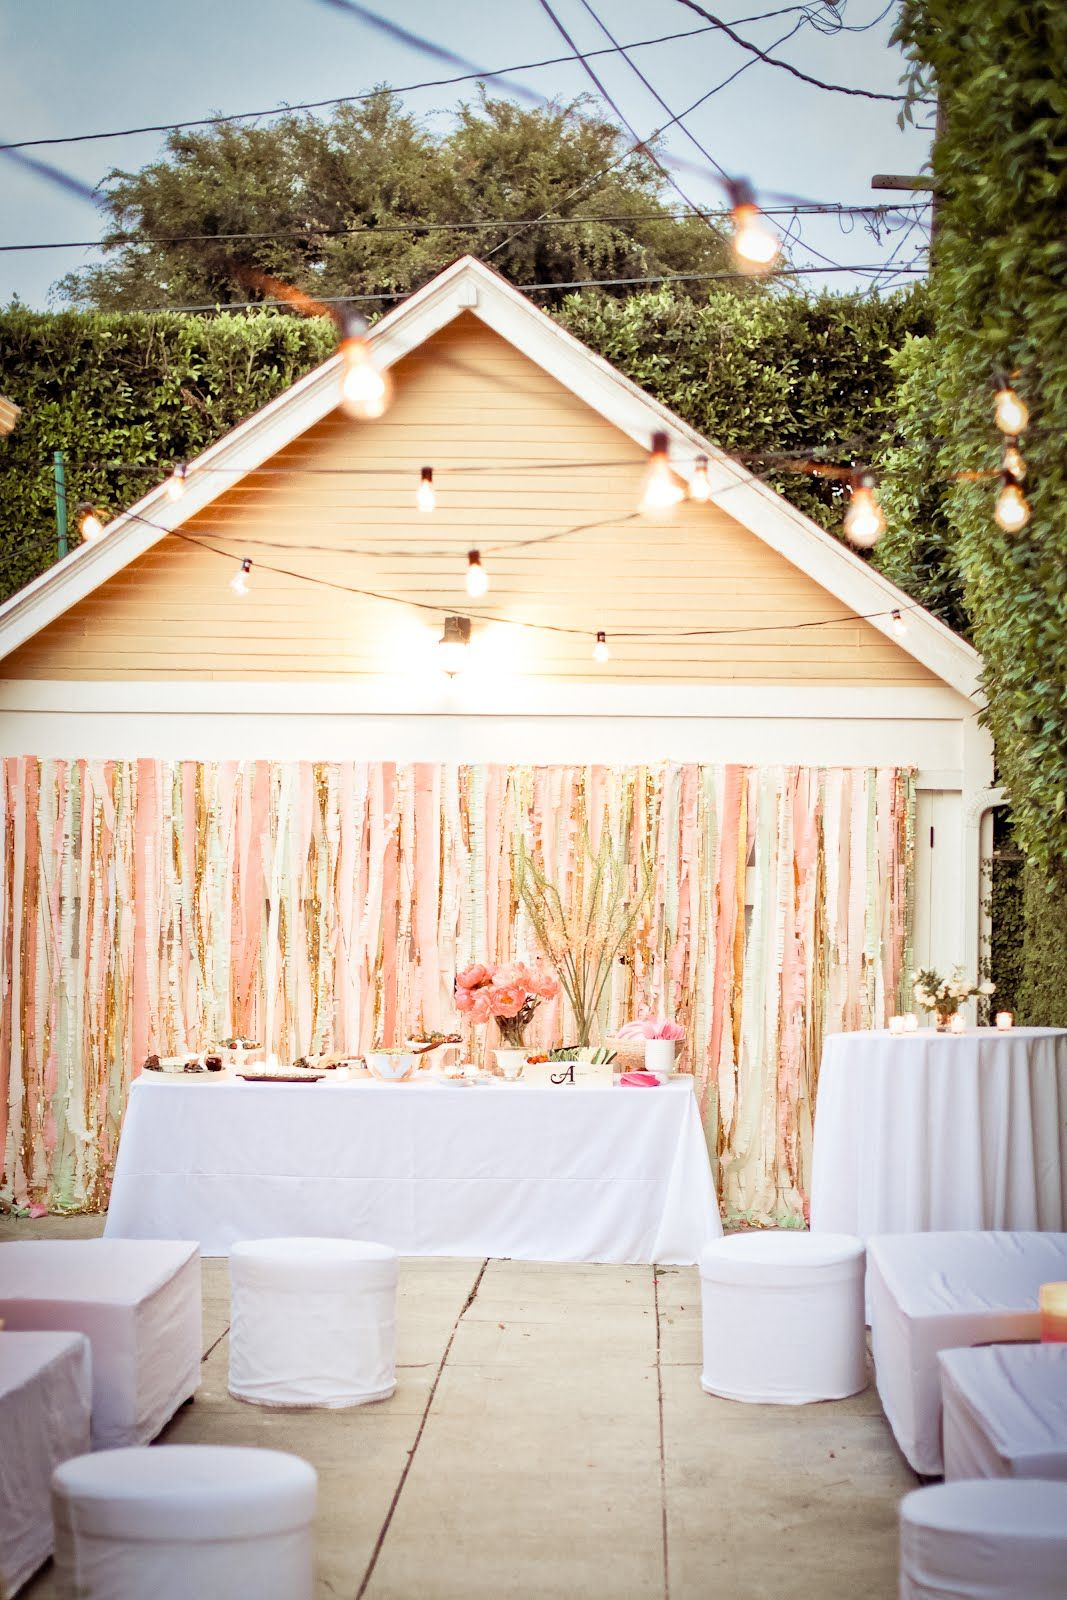 House Party Designer Kristi Bender S Splendid Backyard Birthday Bash Cococozy Backyard Birthday Backyard Wedding Wedding Reception Backdrop